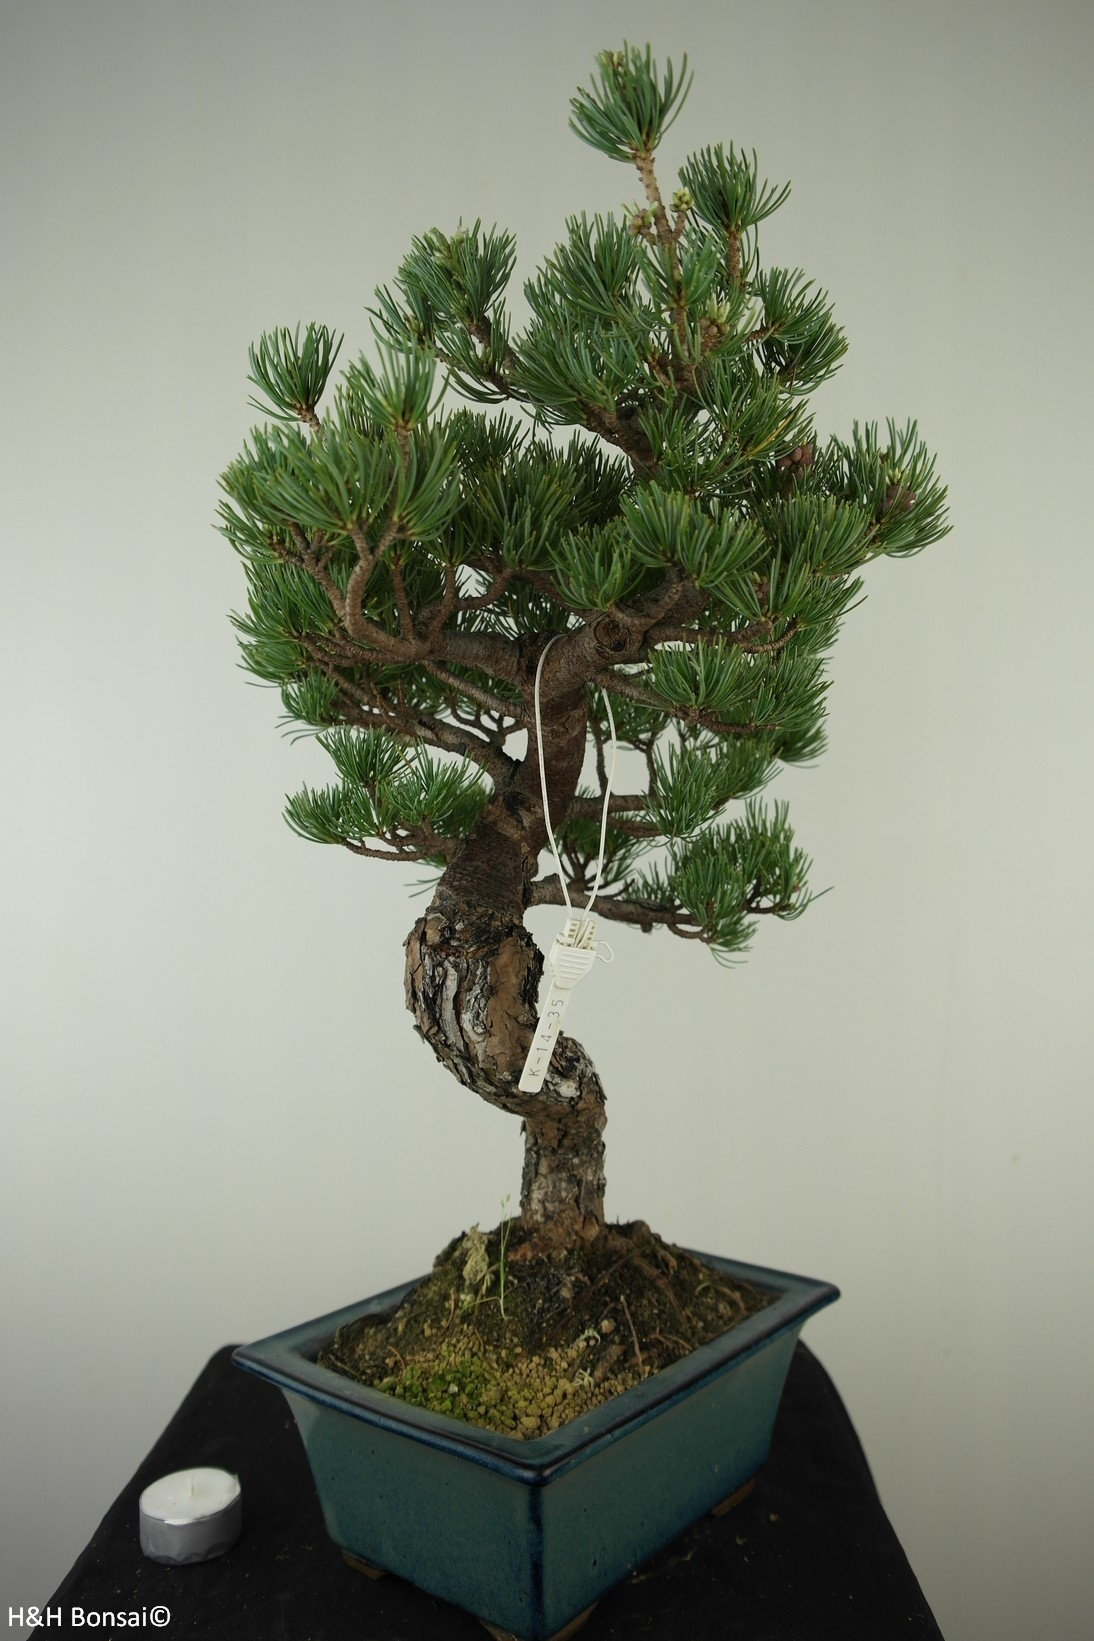 Bonsai Japanese White Pine, Pinus pentaphylla, no. 7809